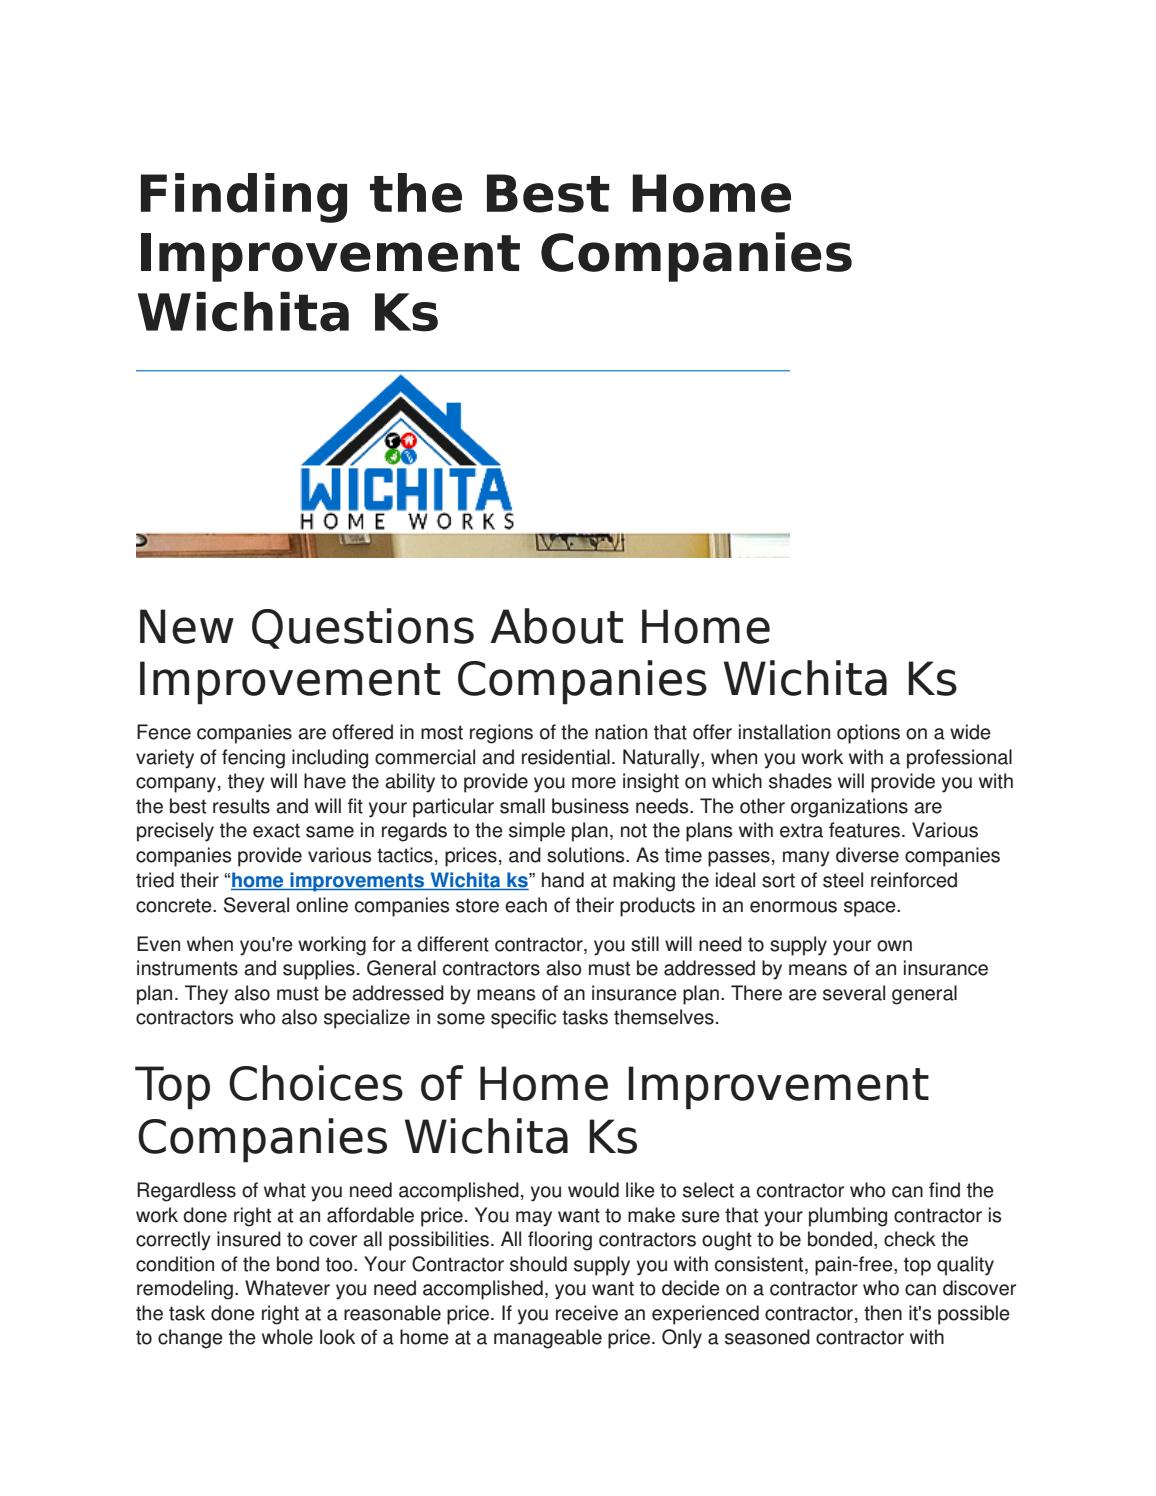 Finding The Best Home Improvement Companies Wichita Ks By